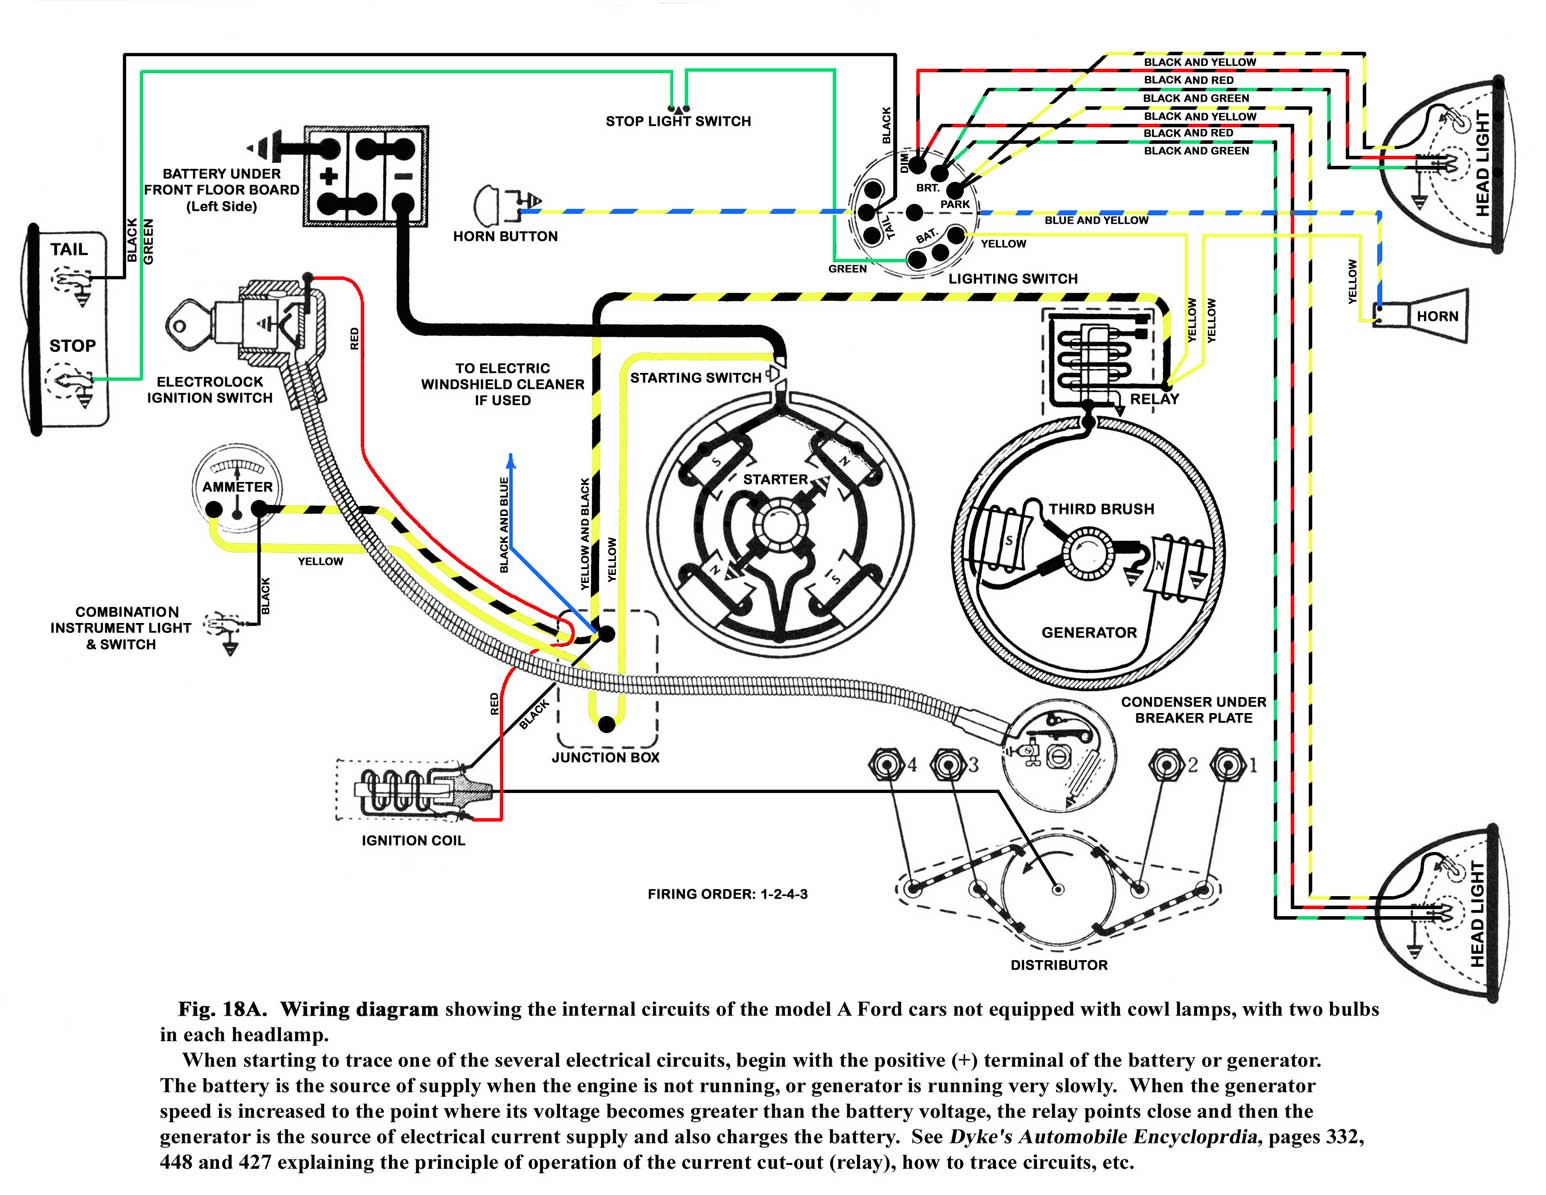 Animal Model Wiring Diagram Not Lossing 1206mx Controller Schematic Chart Diagrams Rh 28 Fitness Mit Trampolin De